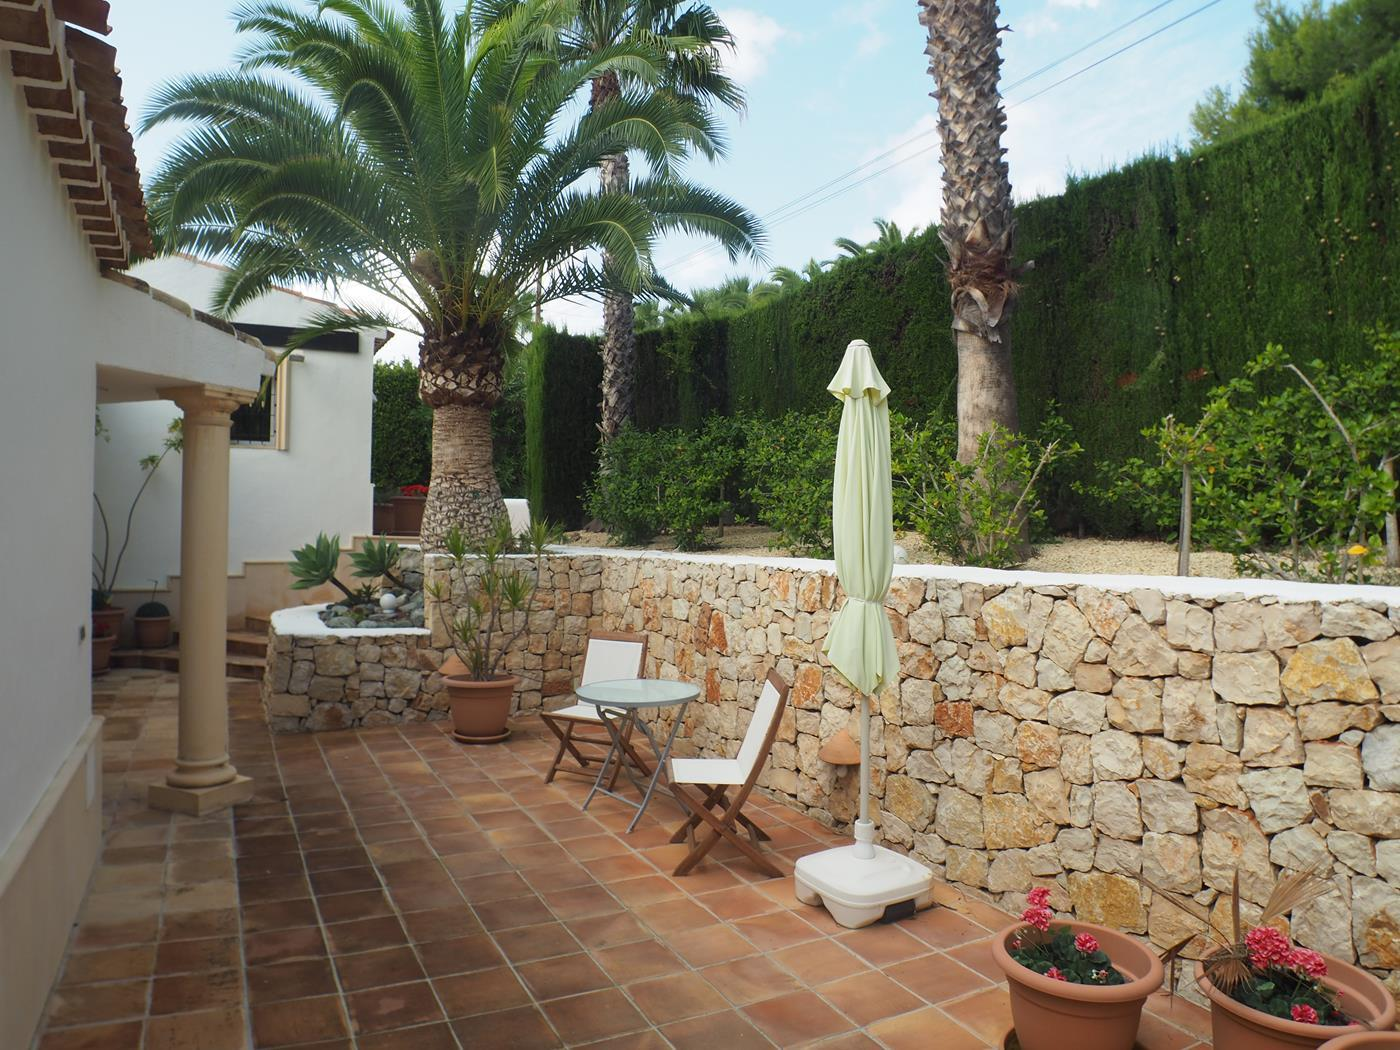 Photogallery - 27 - Exceptional homes in the Costa Blanca. Unparalleled Service. Exceptional properties in the Costa Blanca